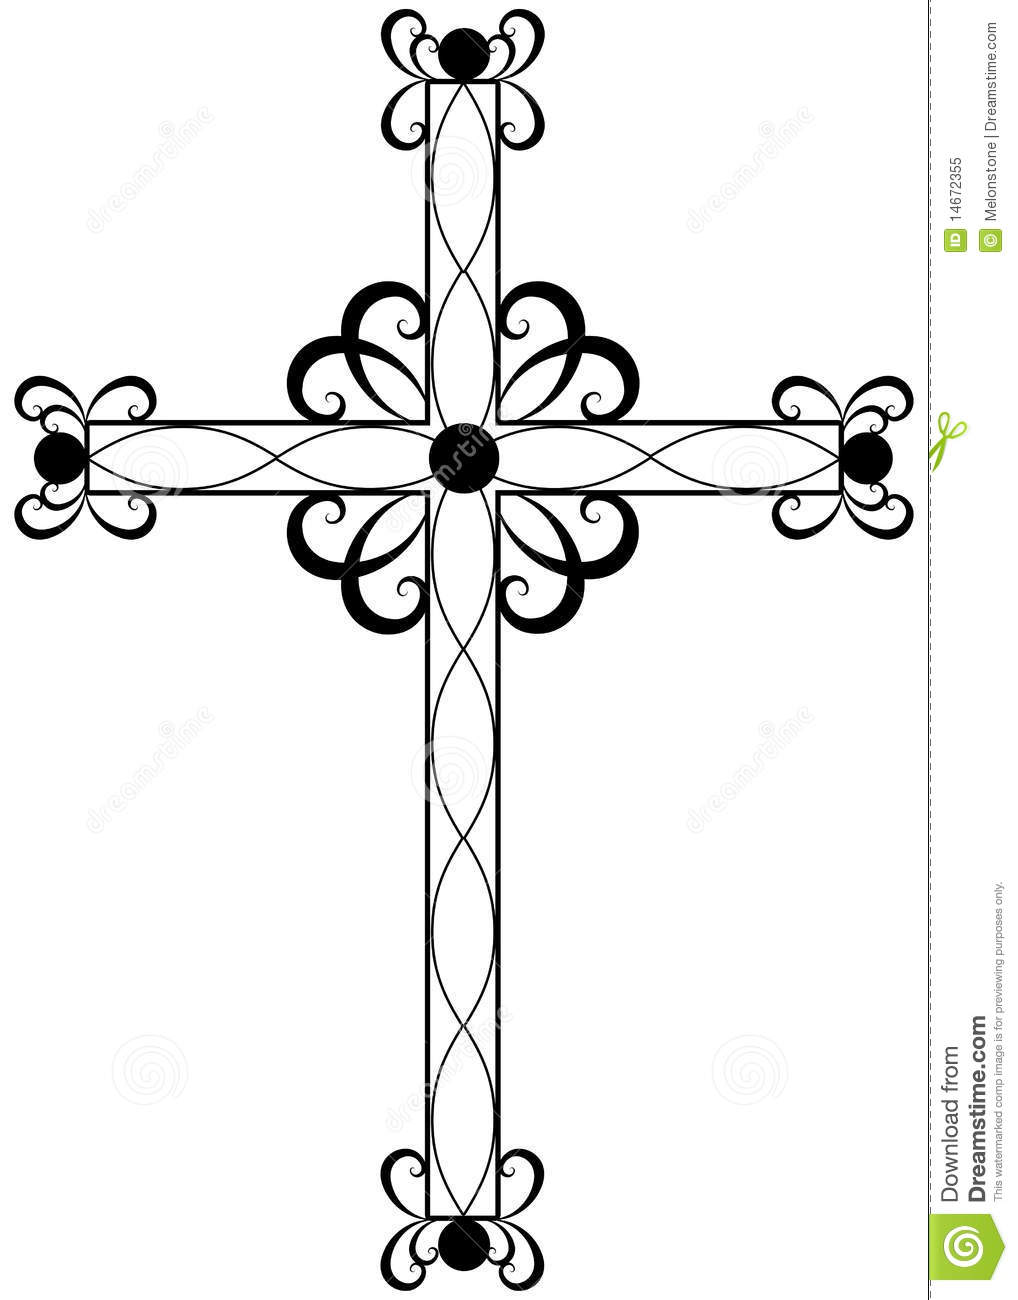 Traditional Ornate Religious Cross Royalty Free Stock